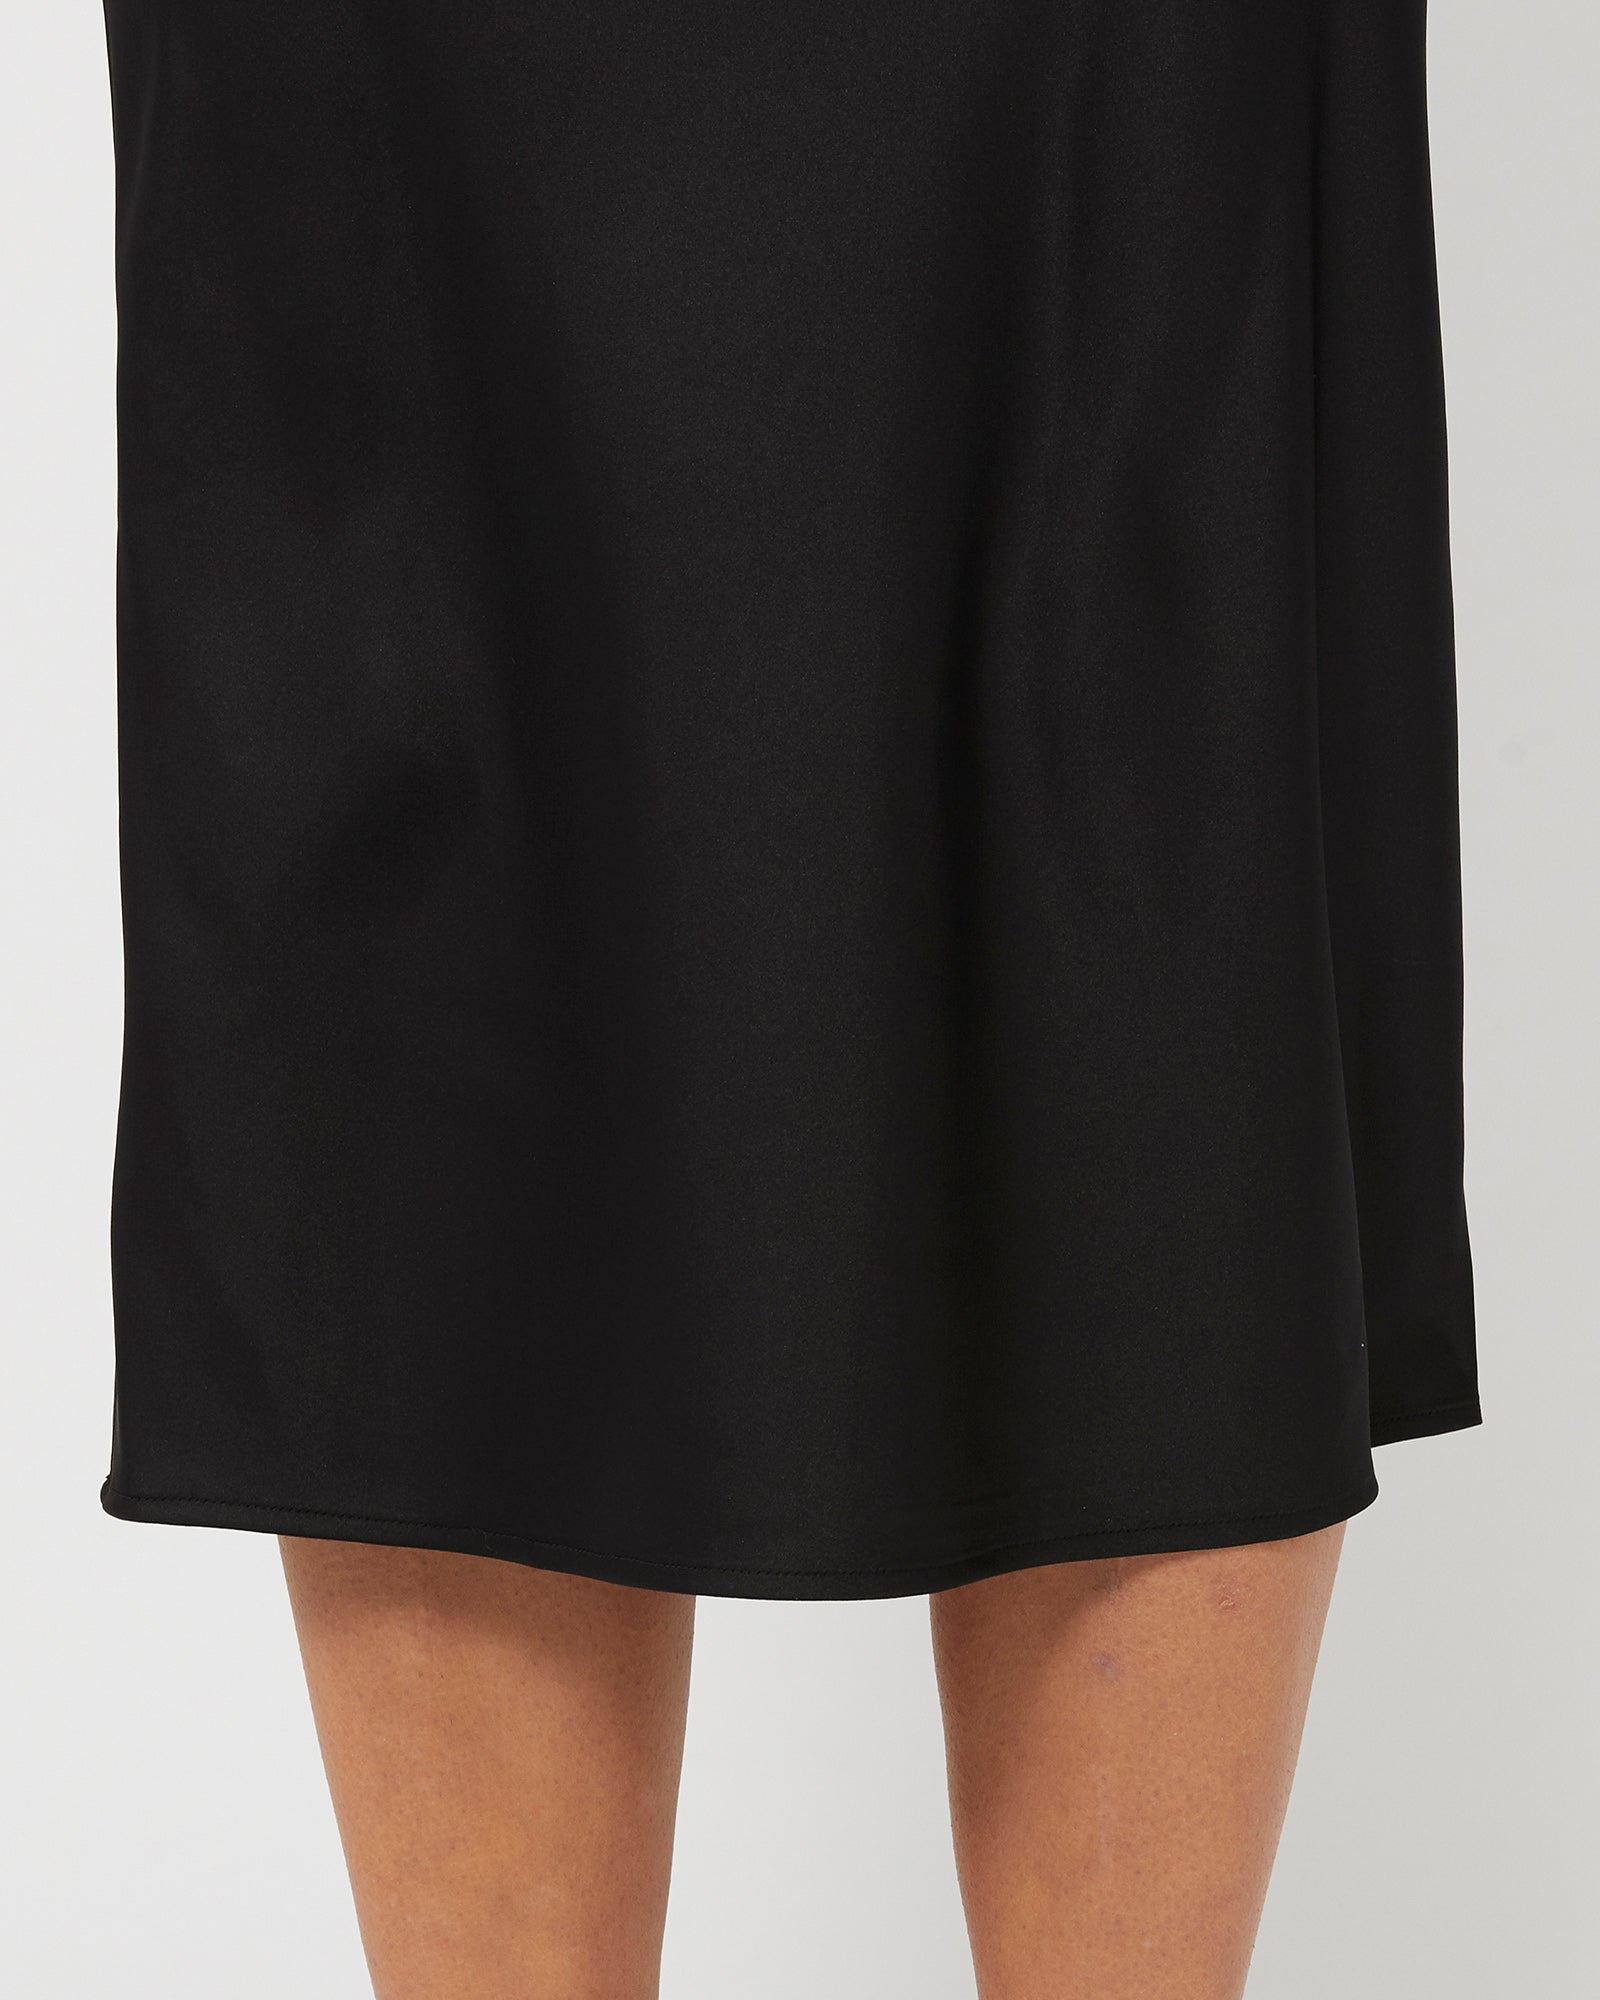 ALL THESE YEARS SATIN SKIRT - BLACK